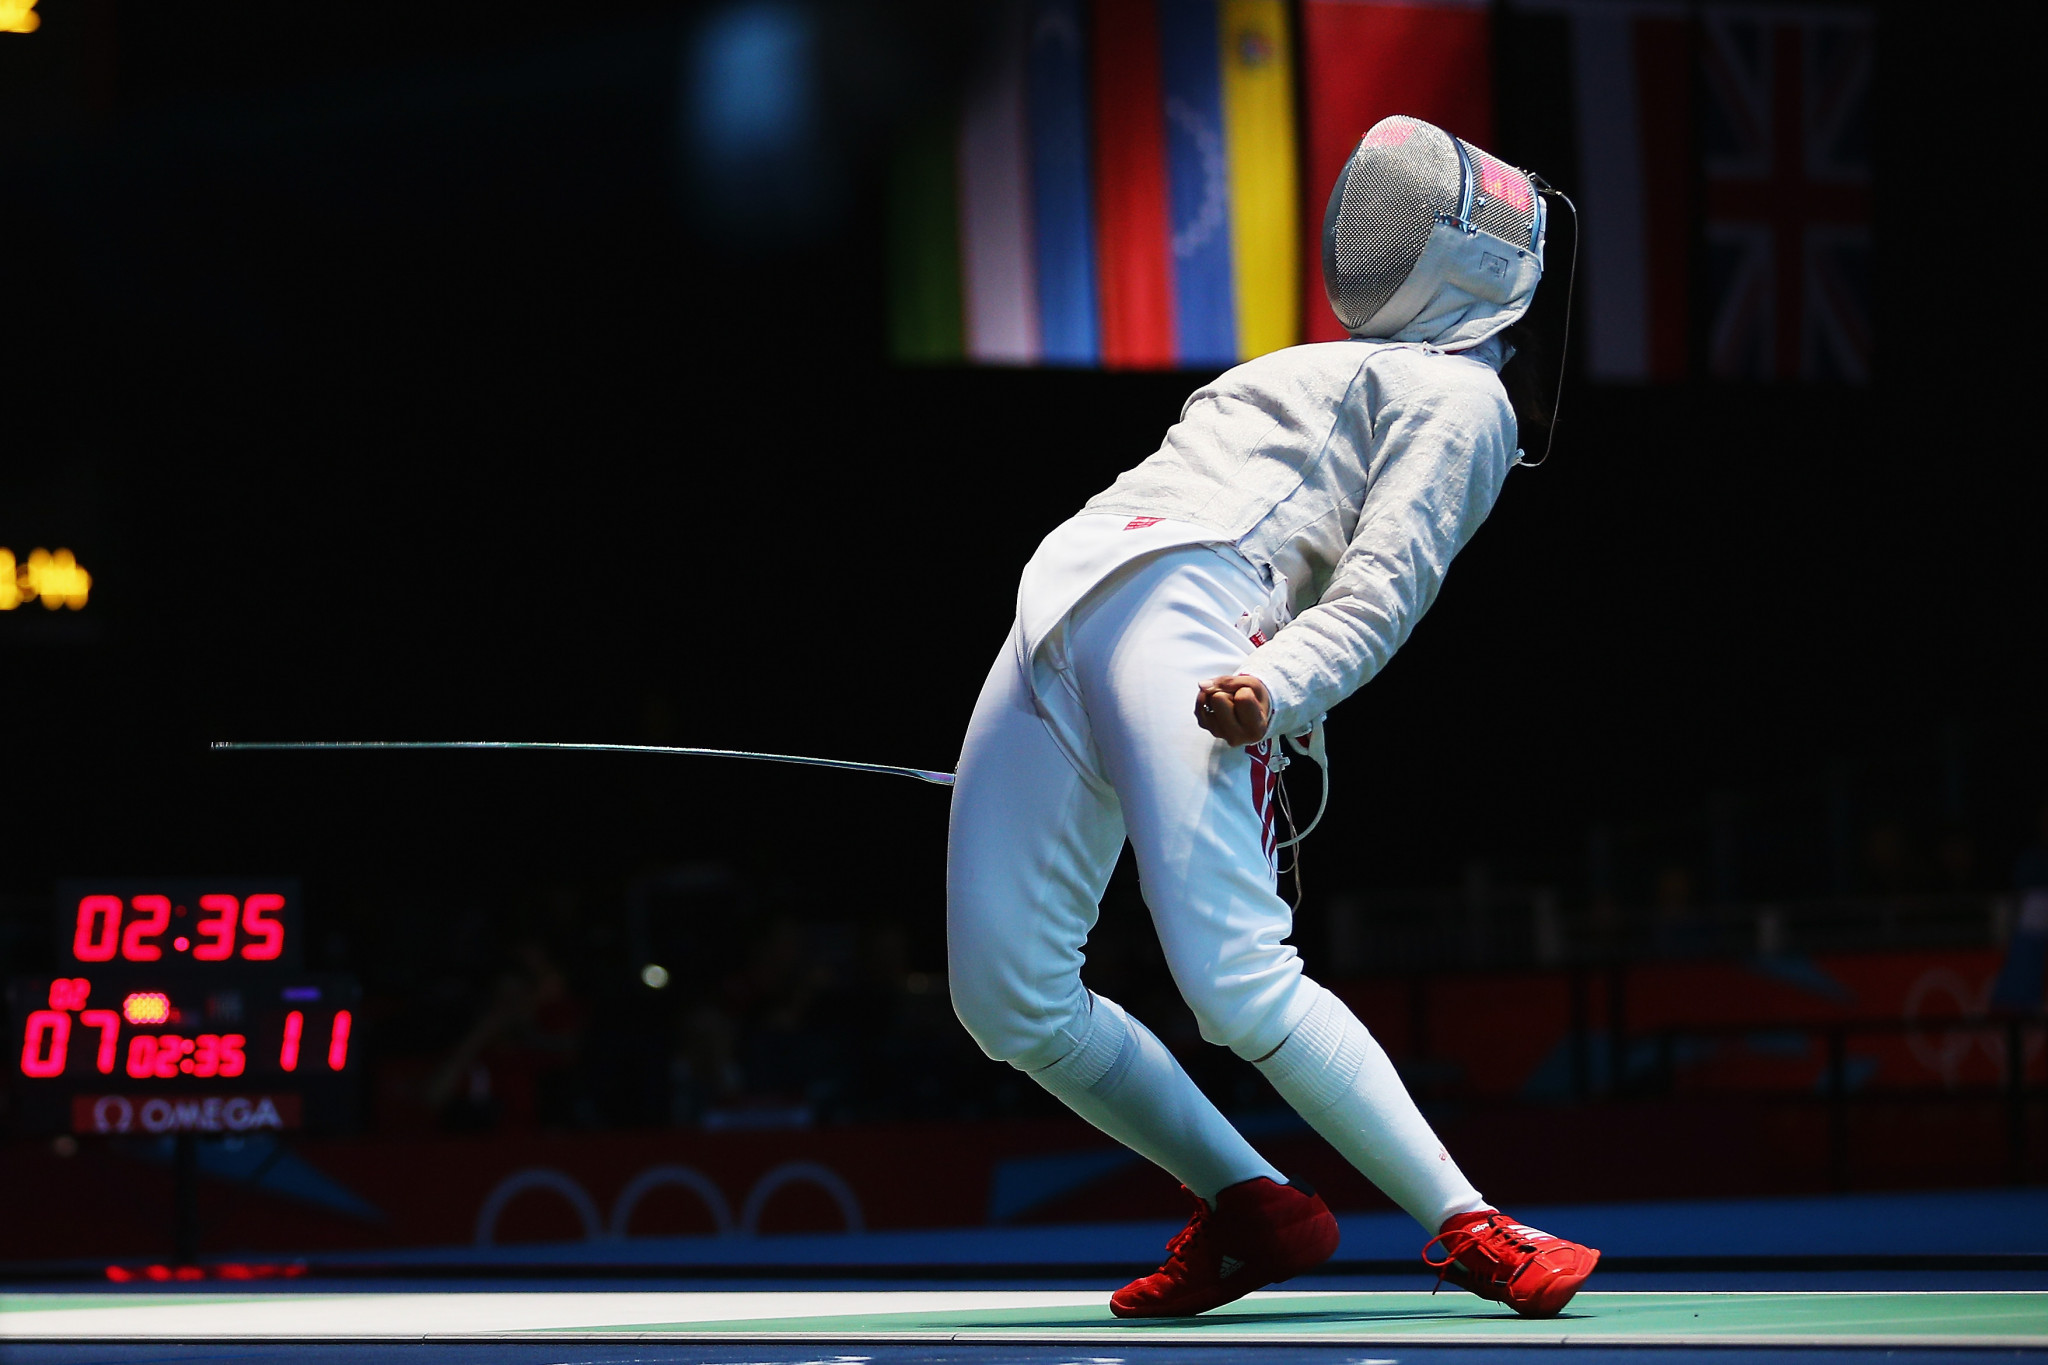 Besbes winning streak ends at African Fencing Championships as compatriot claims women's sabre title